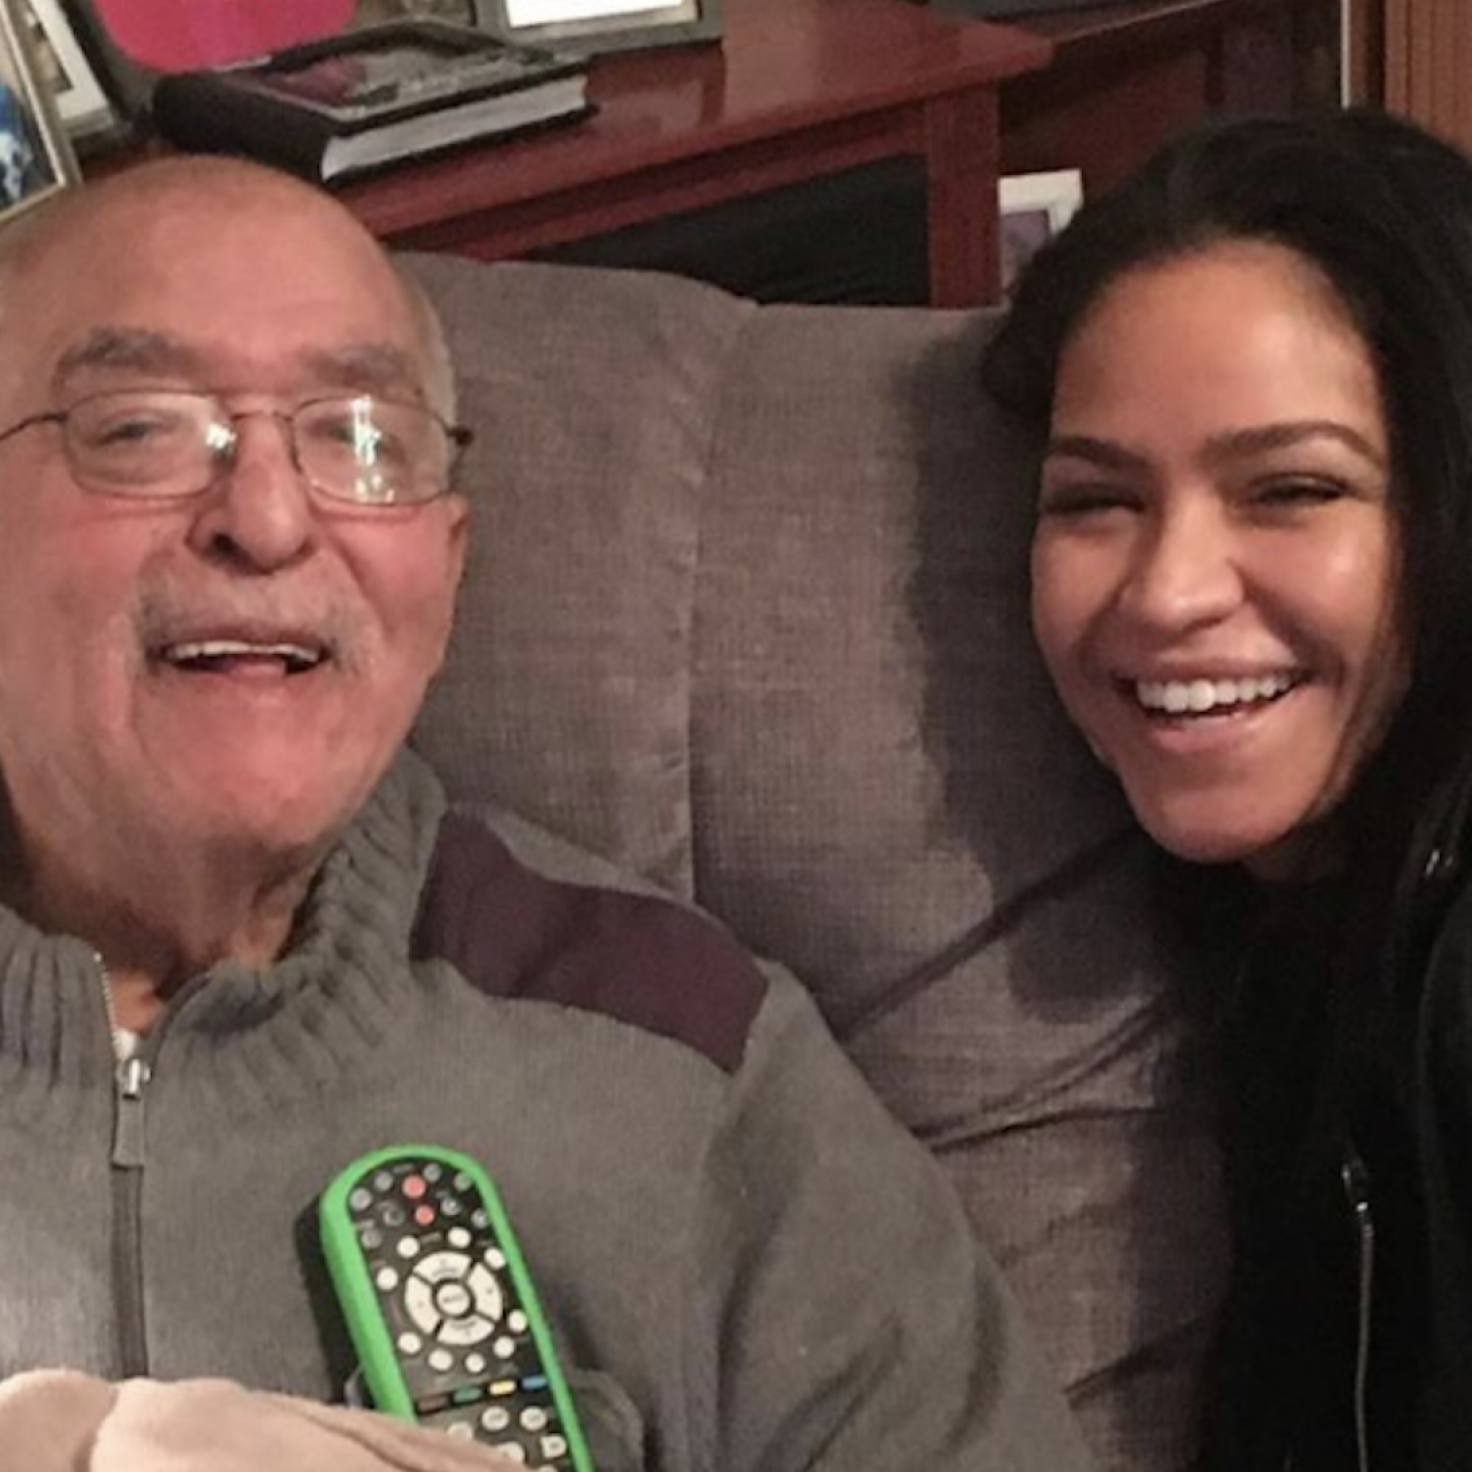 Cassie Mourns Grandfather's Death: 'I Wish I Could Hug You'